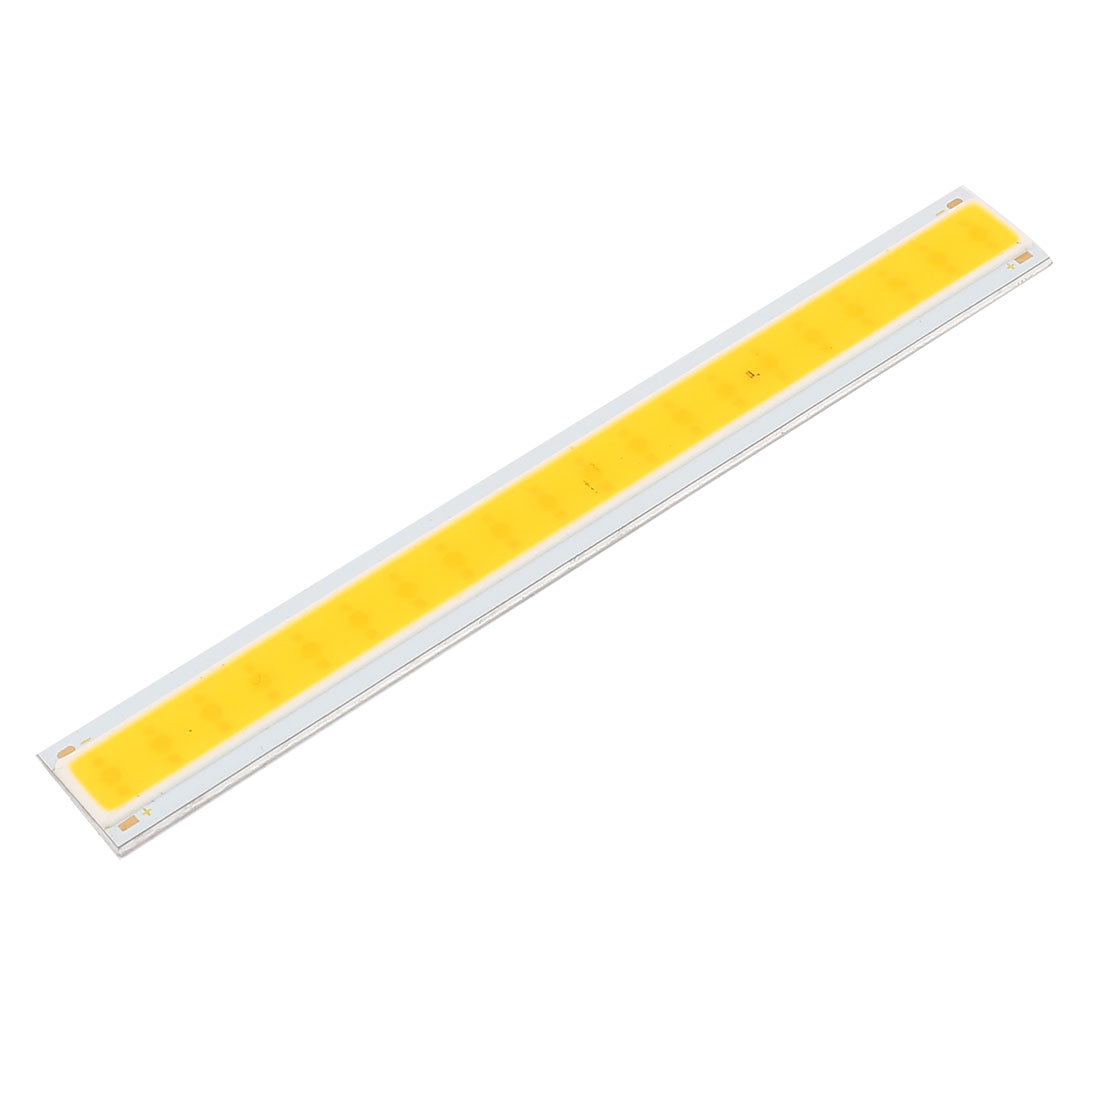 10W DC12-14V 900mA 80-90LM/W Warm White LED Light COB Lamp Beads Chip